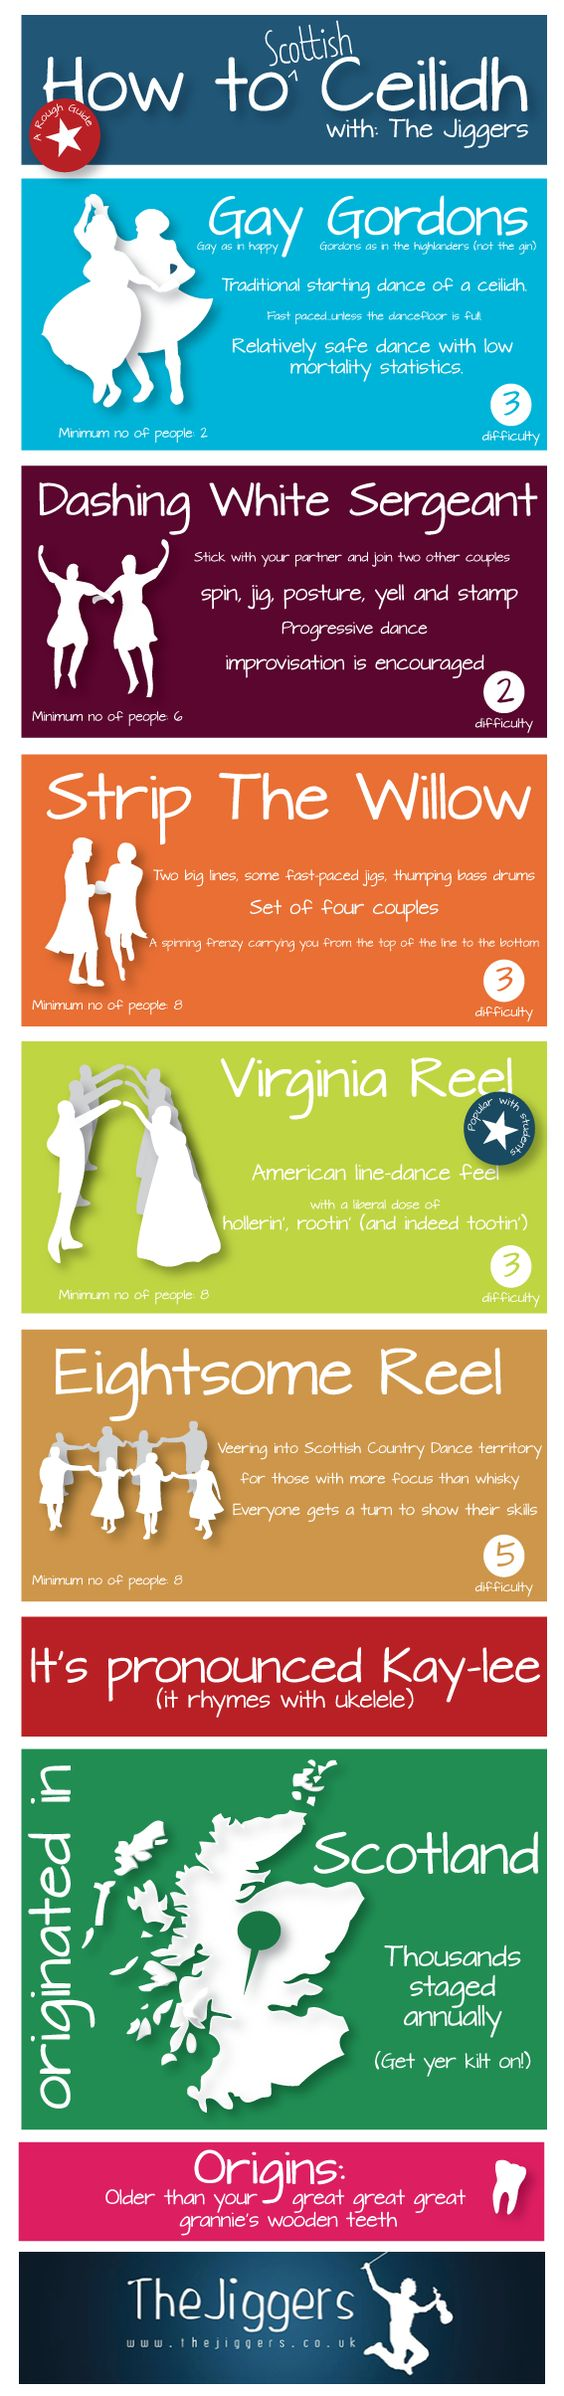 The party season is upon us with Christmas and Hogmanay coming soon and with that comes an abundance of ceilidh dances. To make sure everyone is up to scratch with their ceilidh dance moves, we created this infographic which gives you the basic guide to the best ceilidh dances. Including the best ceilidh dances, a brief description of each and difficulty rating.